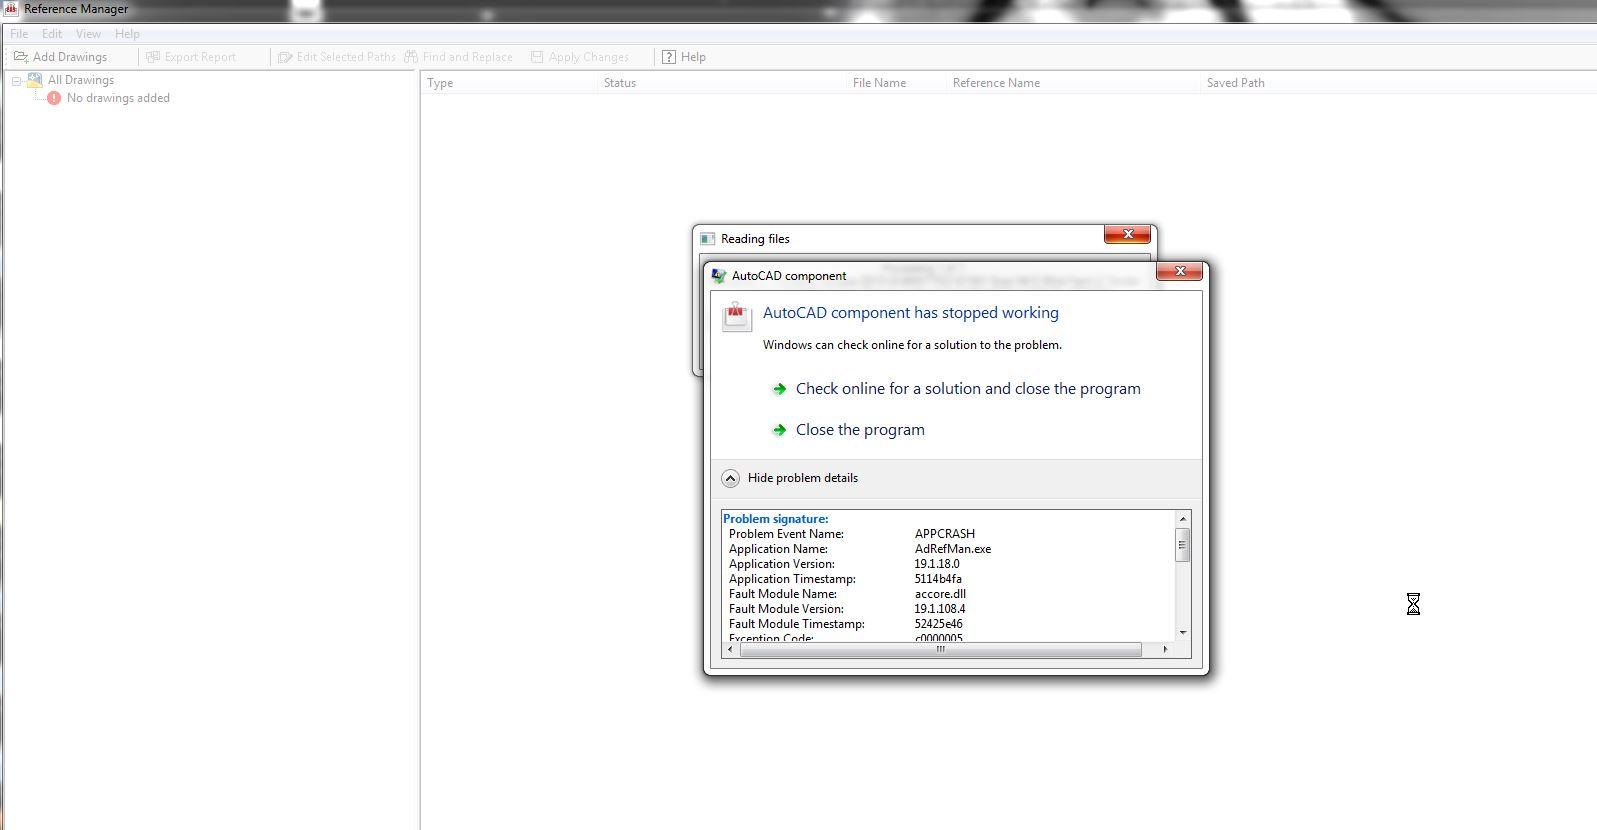 Reference Manager crashes continually - Autodesk Community